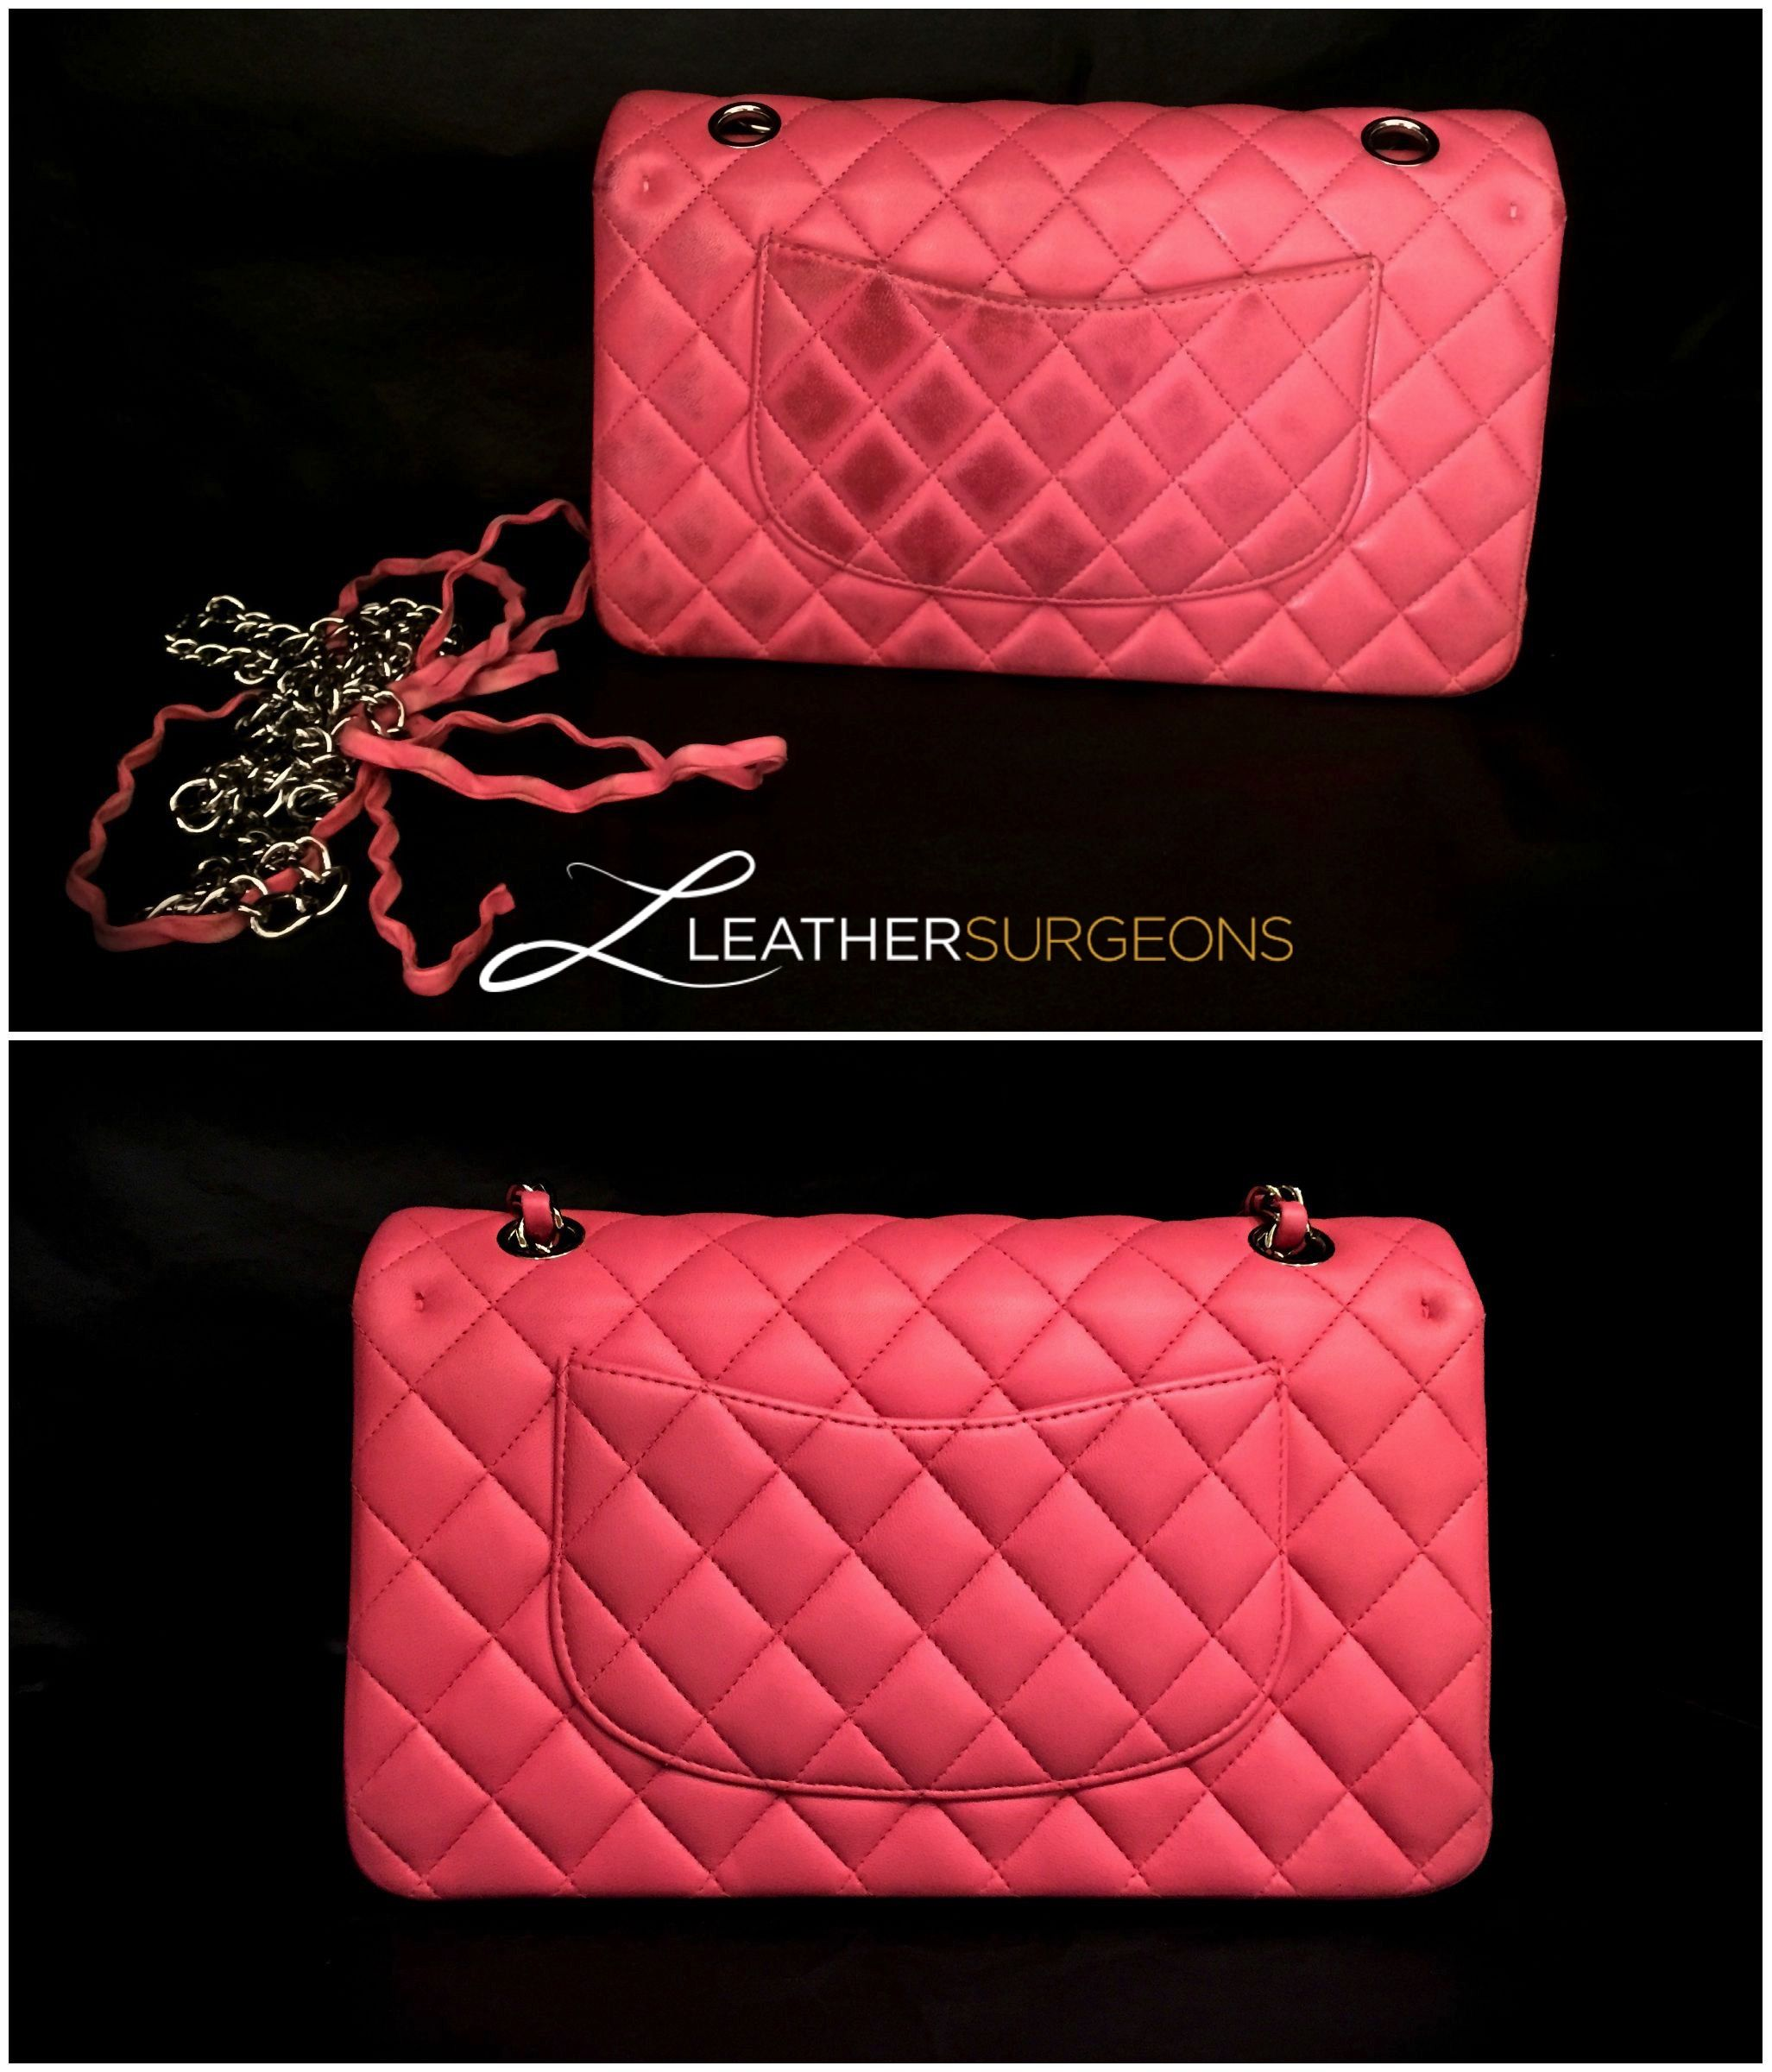 79e900a19fd80e Pink Chanel Classic before and after a spa treatment at Leather Surgeons.  #leathersurgeons #authentic #handbagrepair #ChanelClassic #BeforeandAfter  #Fashion ...